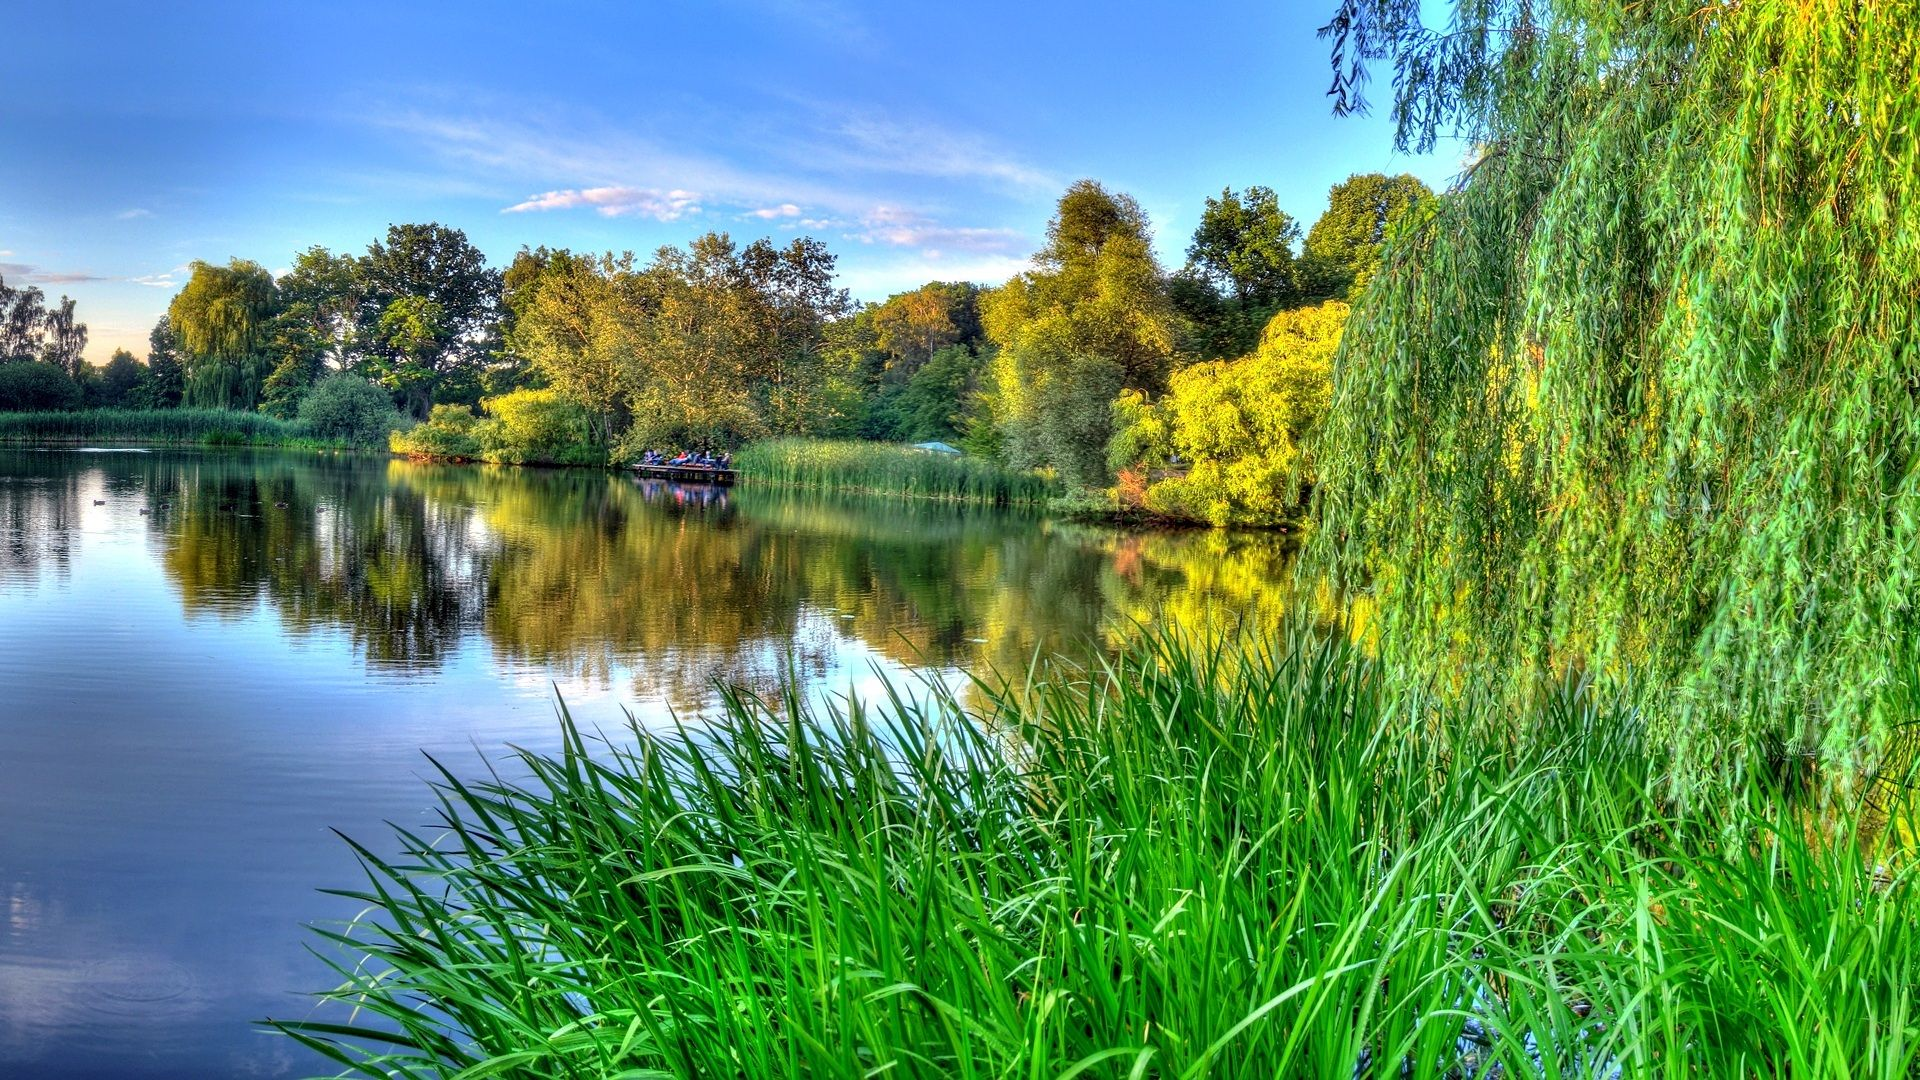 Summer Nature Forest River Lake Beautiful Pictures